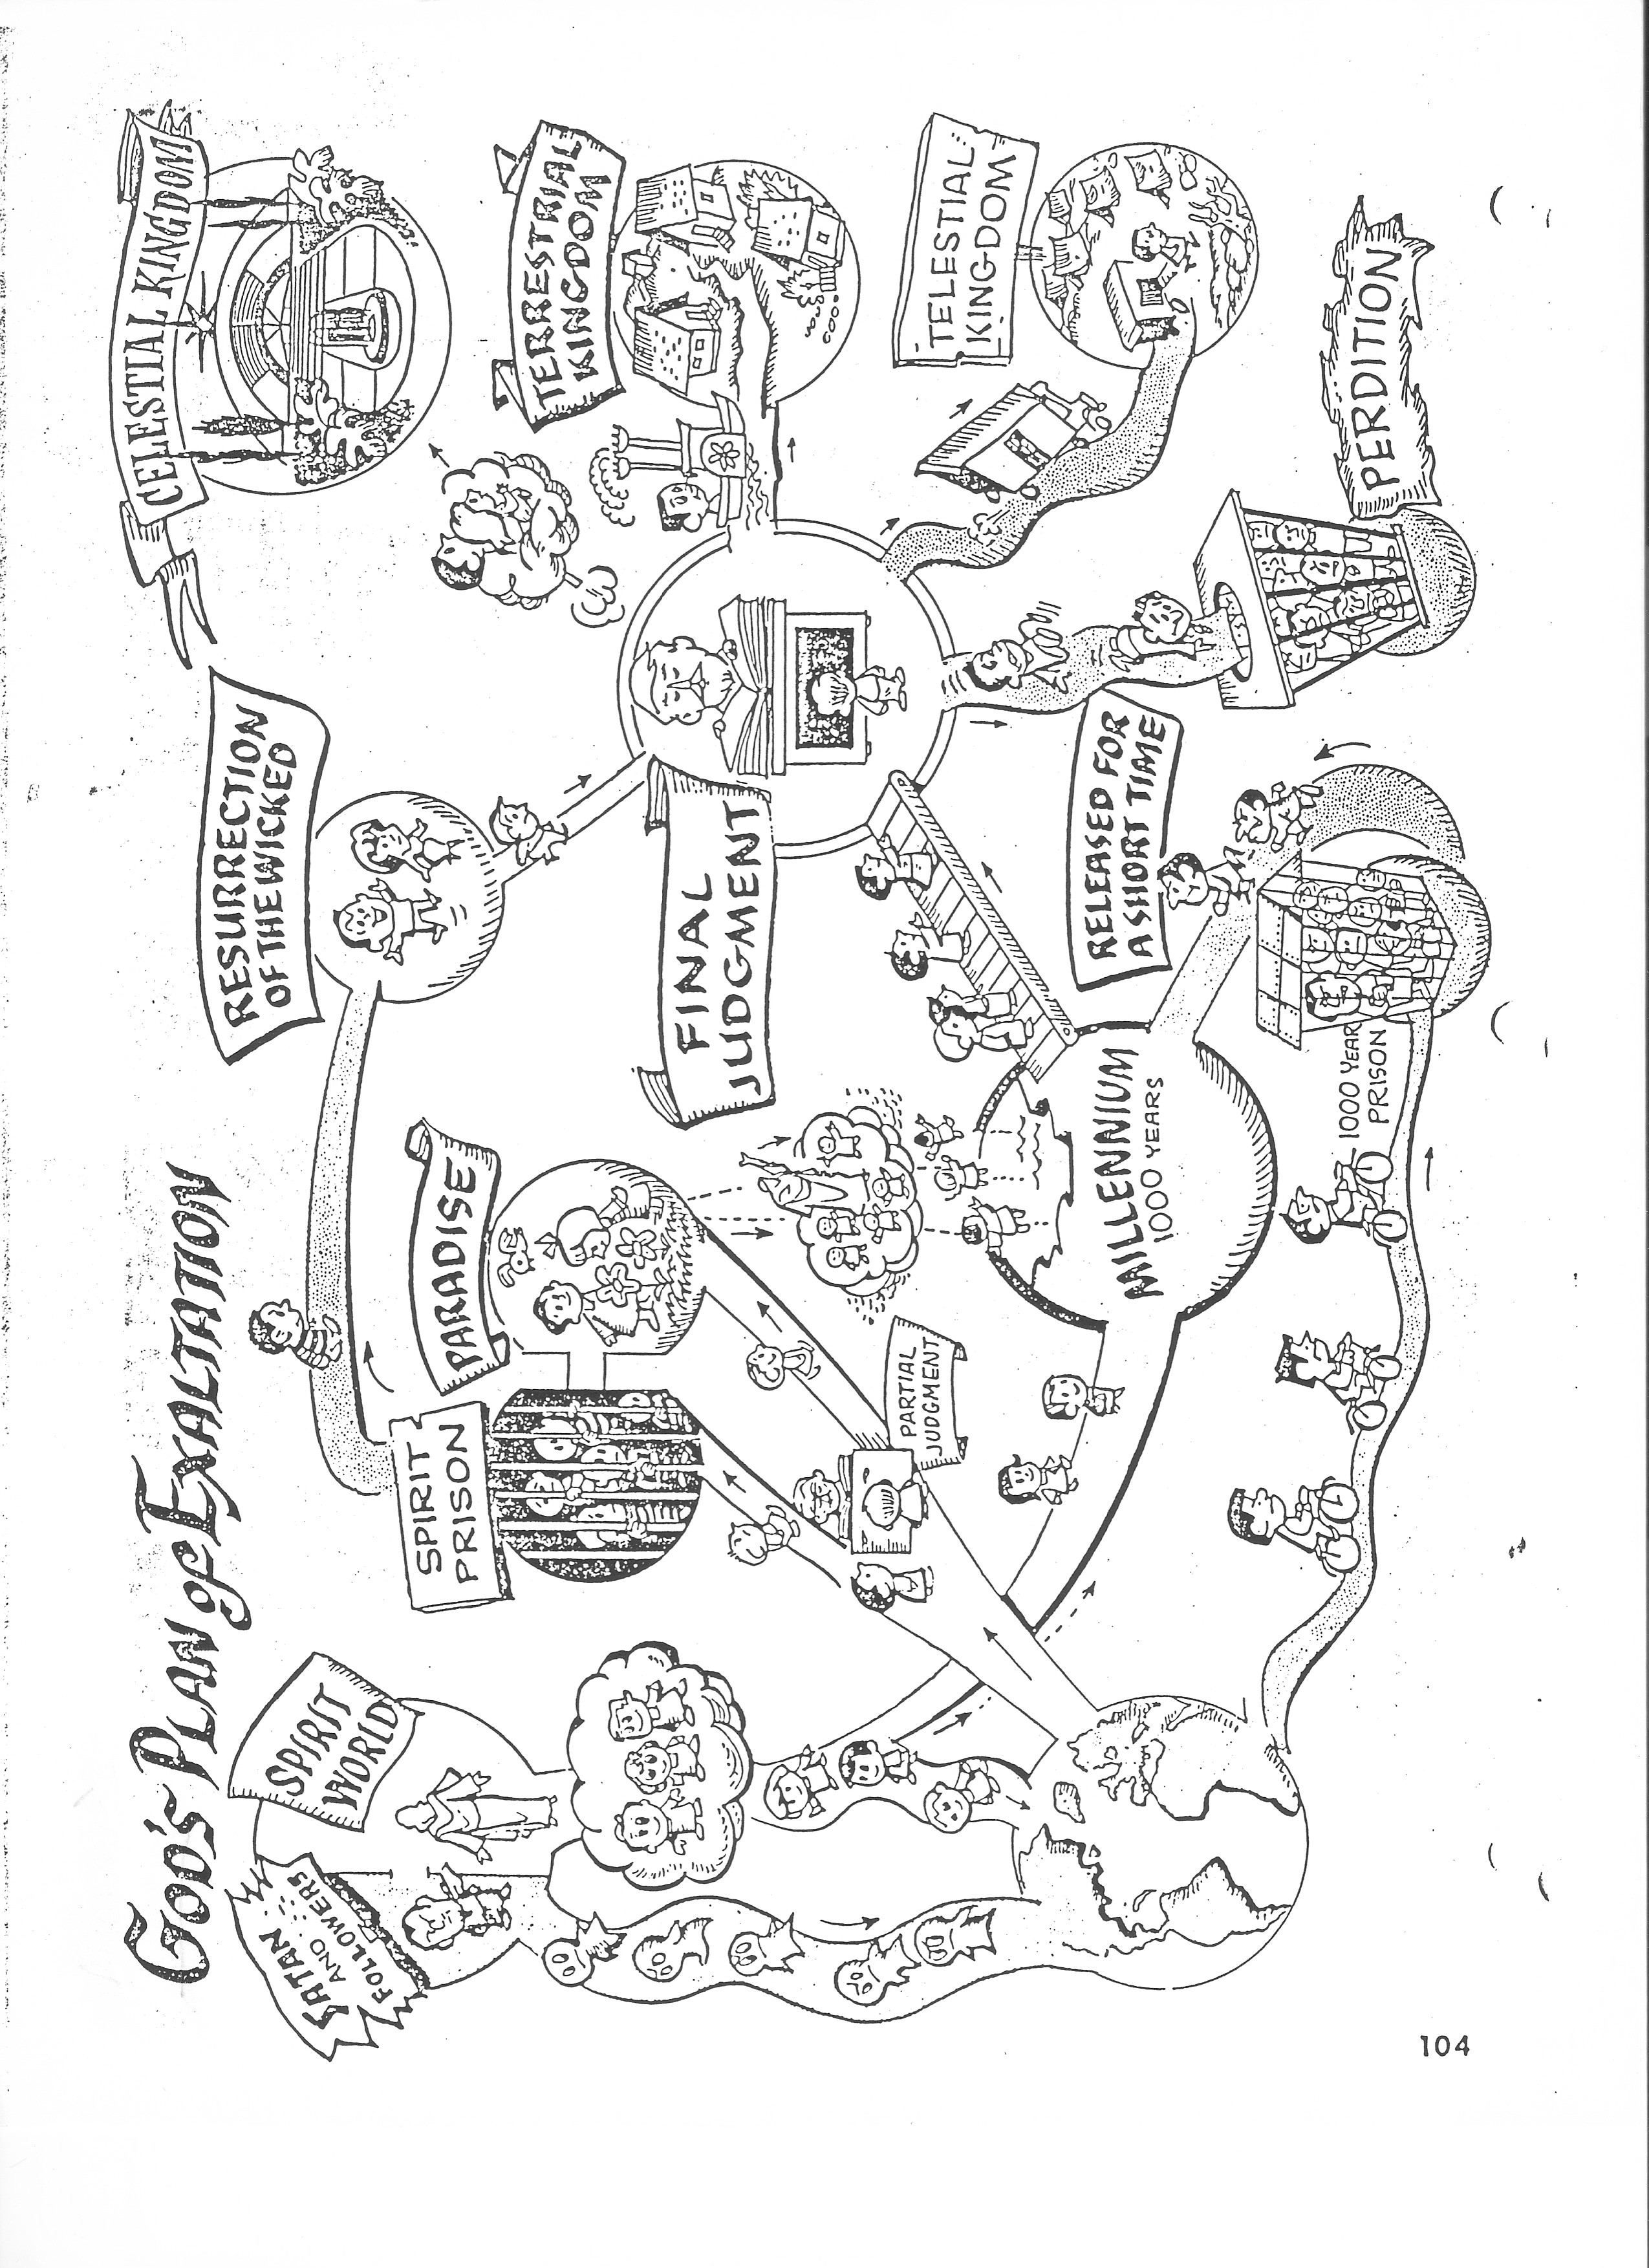 salvation army coloring pages ziggy cartoon the salvation army ziggy cartoon army pages coloring salvation